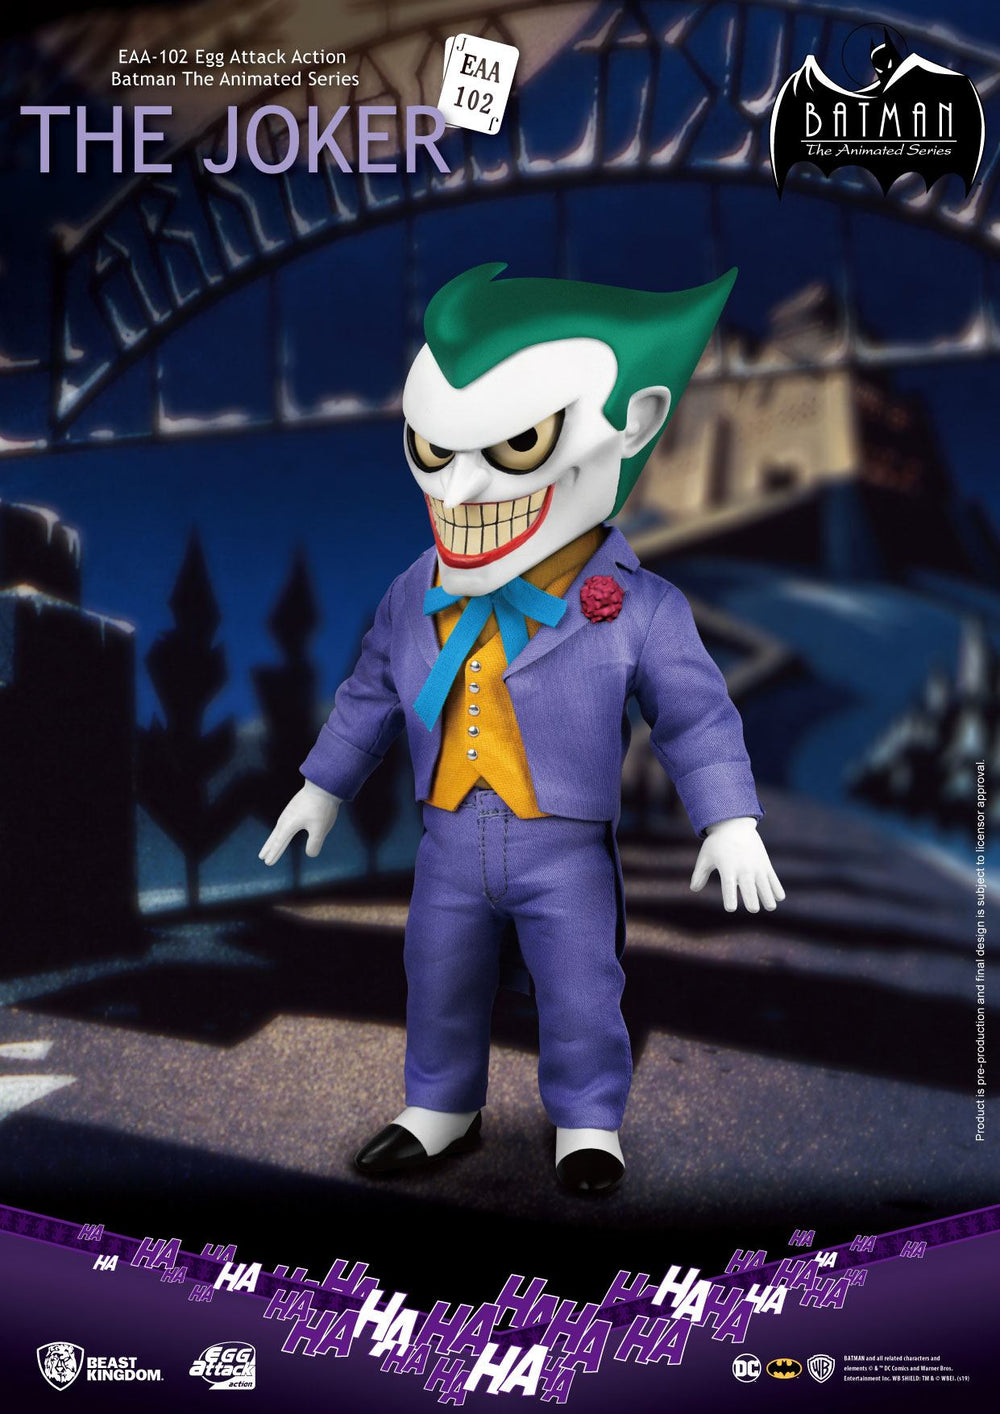 Beast Kingdom Batman The Animated Series Joker Egg Attack Action Figure